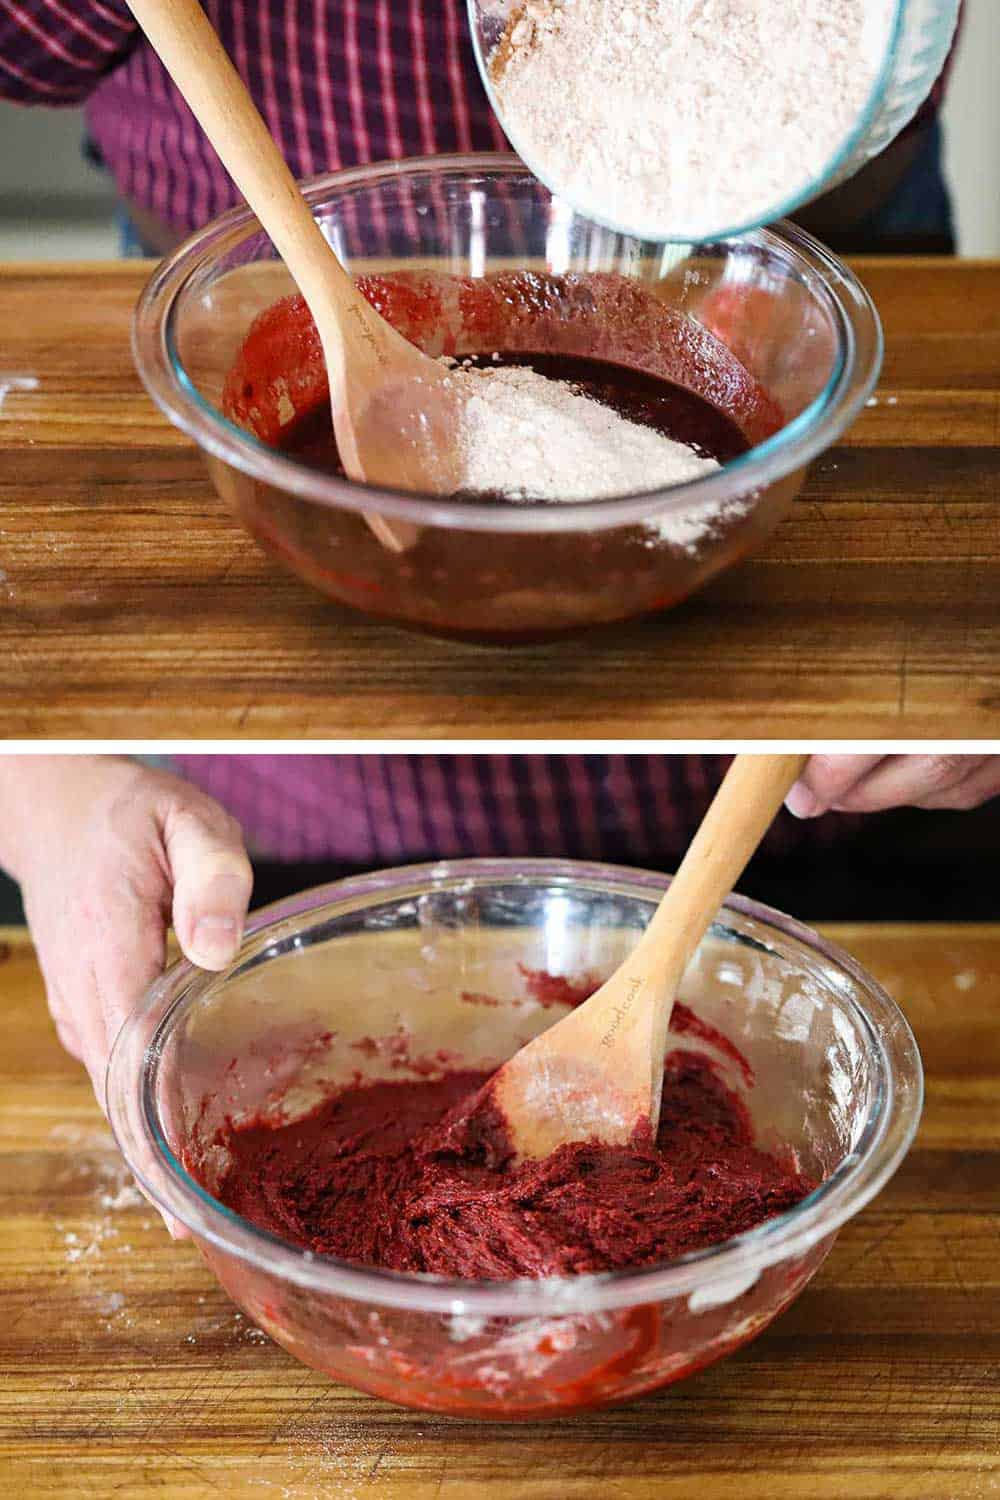 A person dumping a flour mixture into a chocolate mixture and then completely mixed together with a wooden spoon.